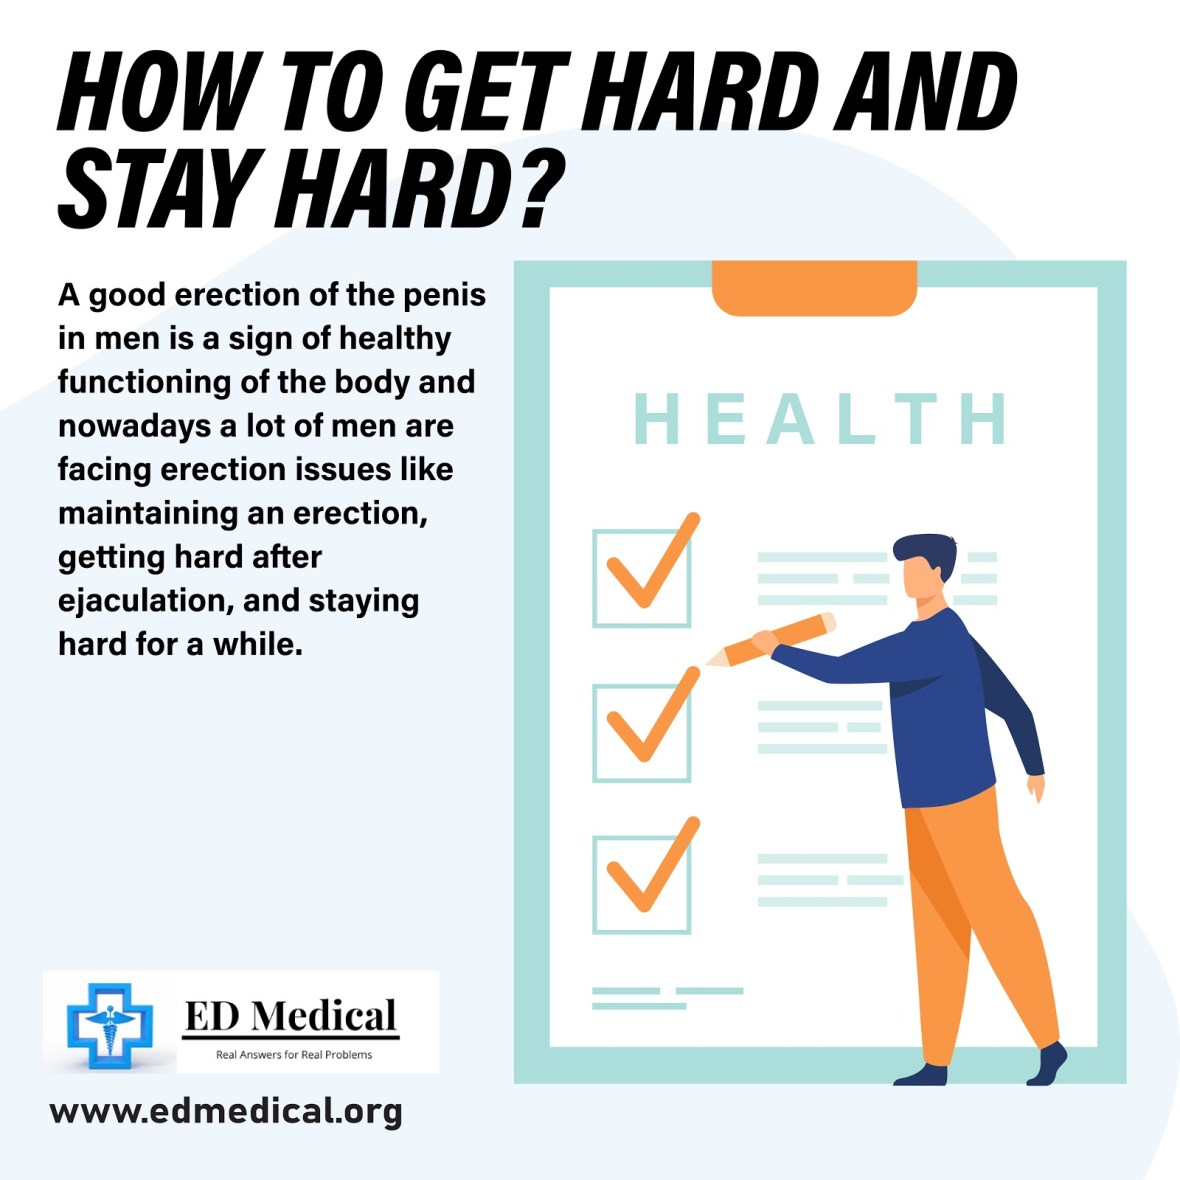 How to get hard and stay hard?